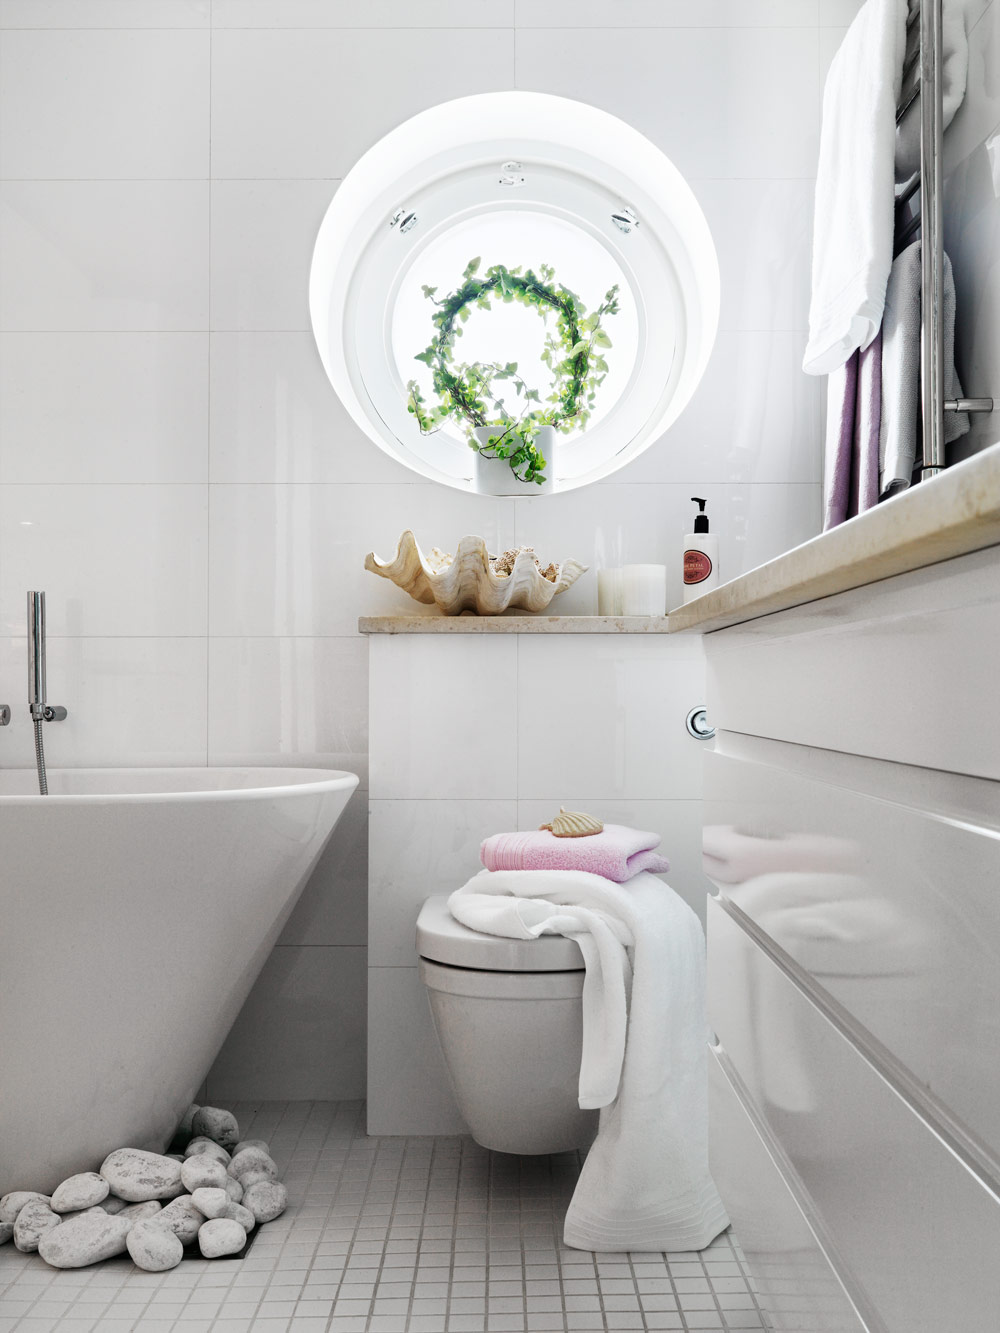 Stylish small bathroom with an unusual decor digsdigs for Bathtub ideas